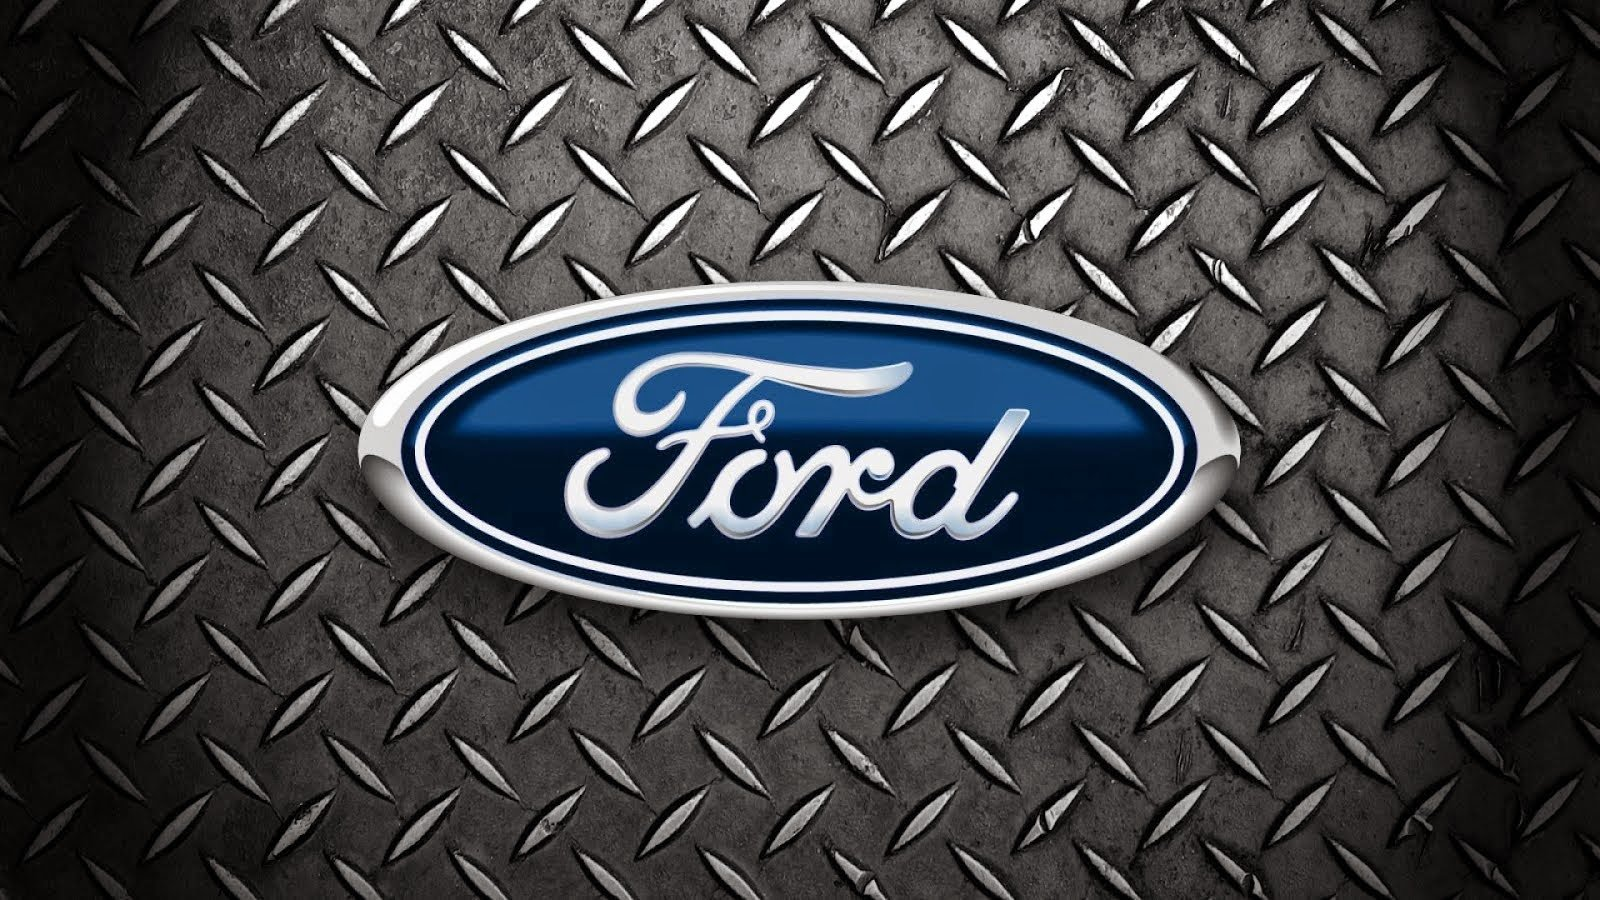 Built Ford Tough Wallpaper Wallpapersafari